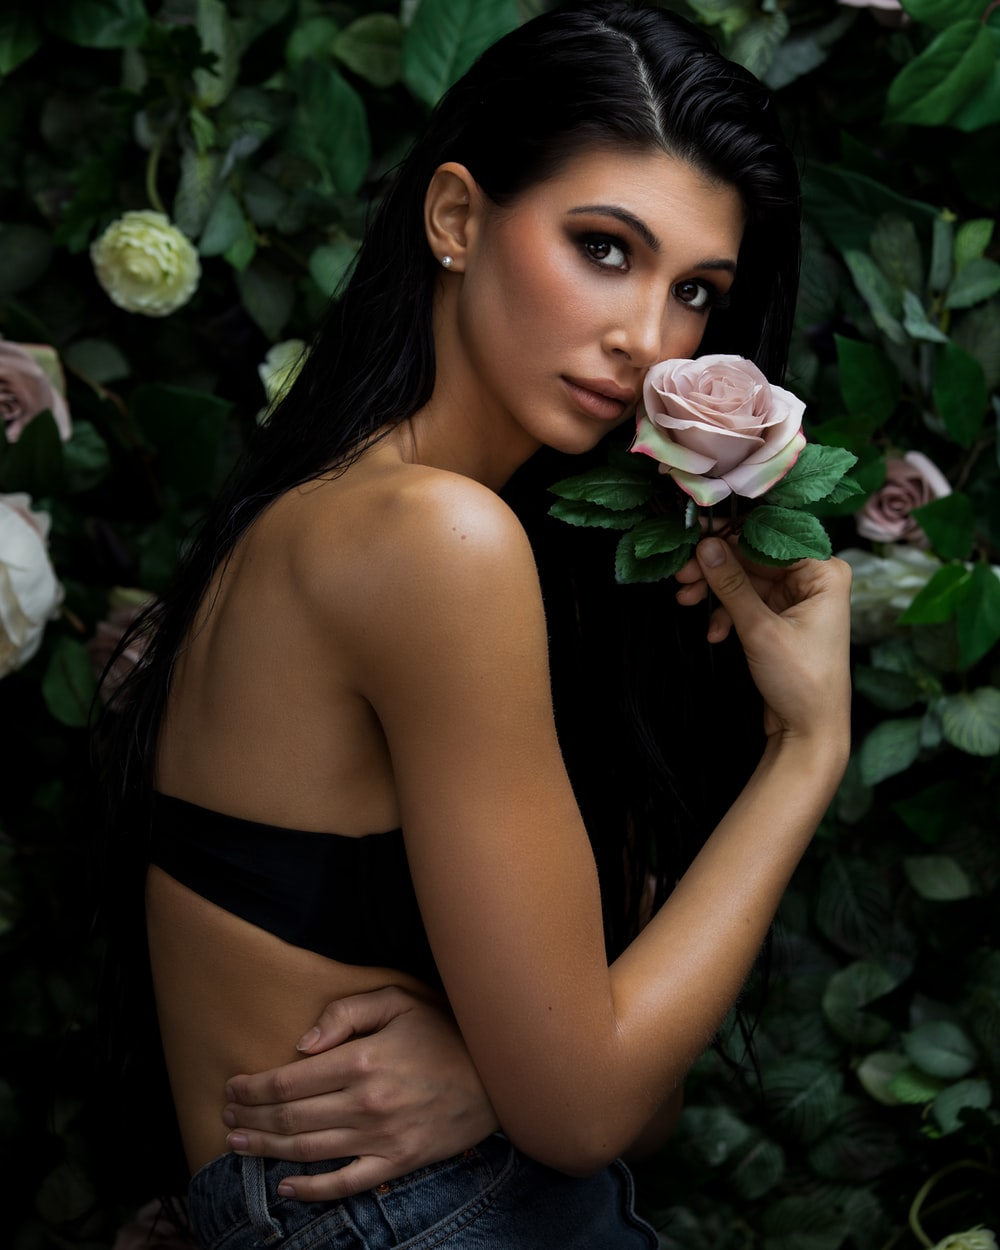 woman in black brassiere holding pink rose